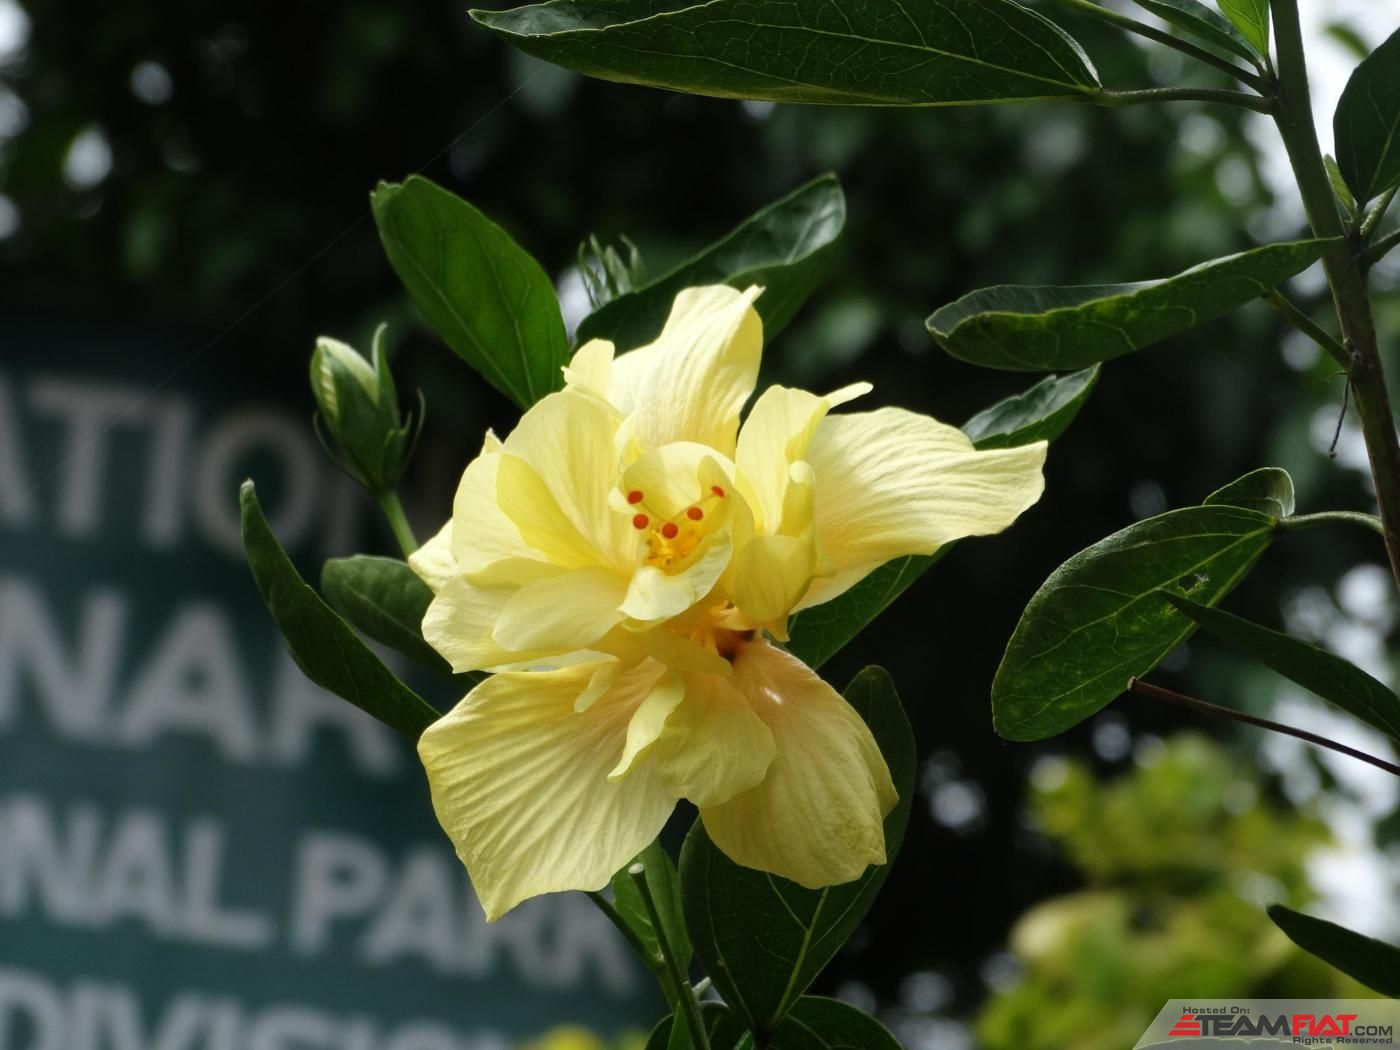 Flower at Lakham Falls.jpg